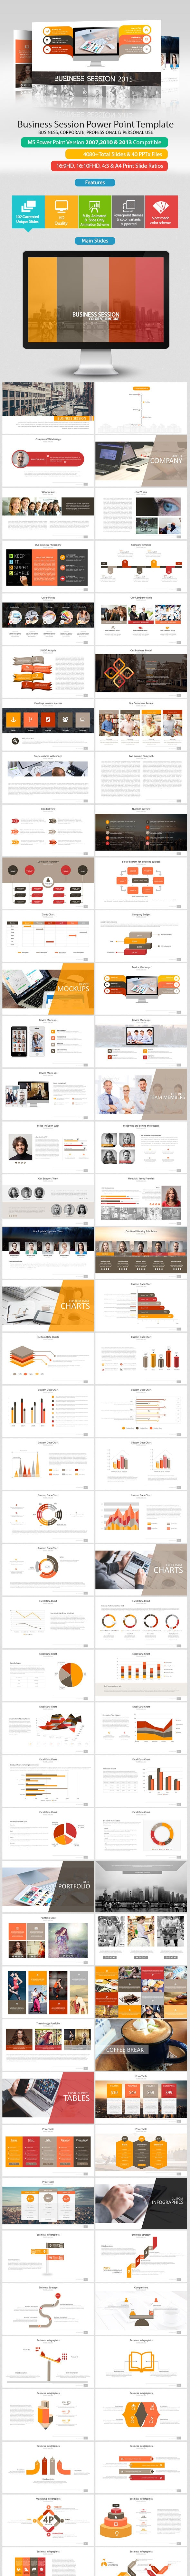 Business Session Power Point Presentation - PowerPoint Templates Presentation Templates